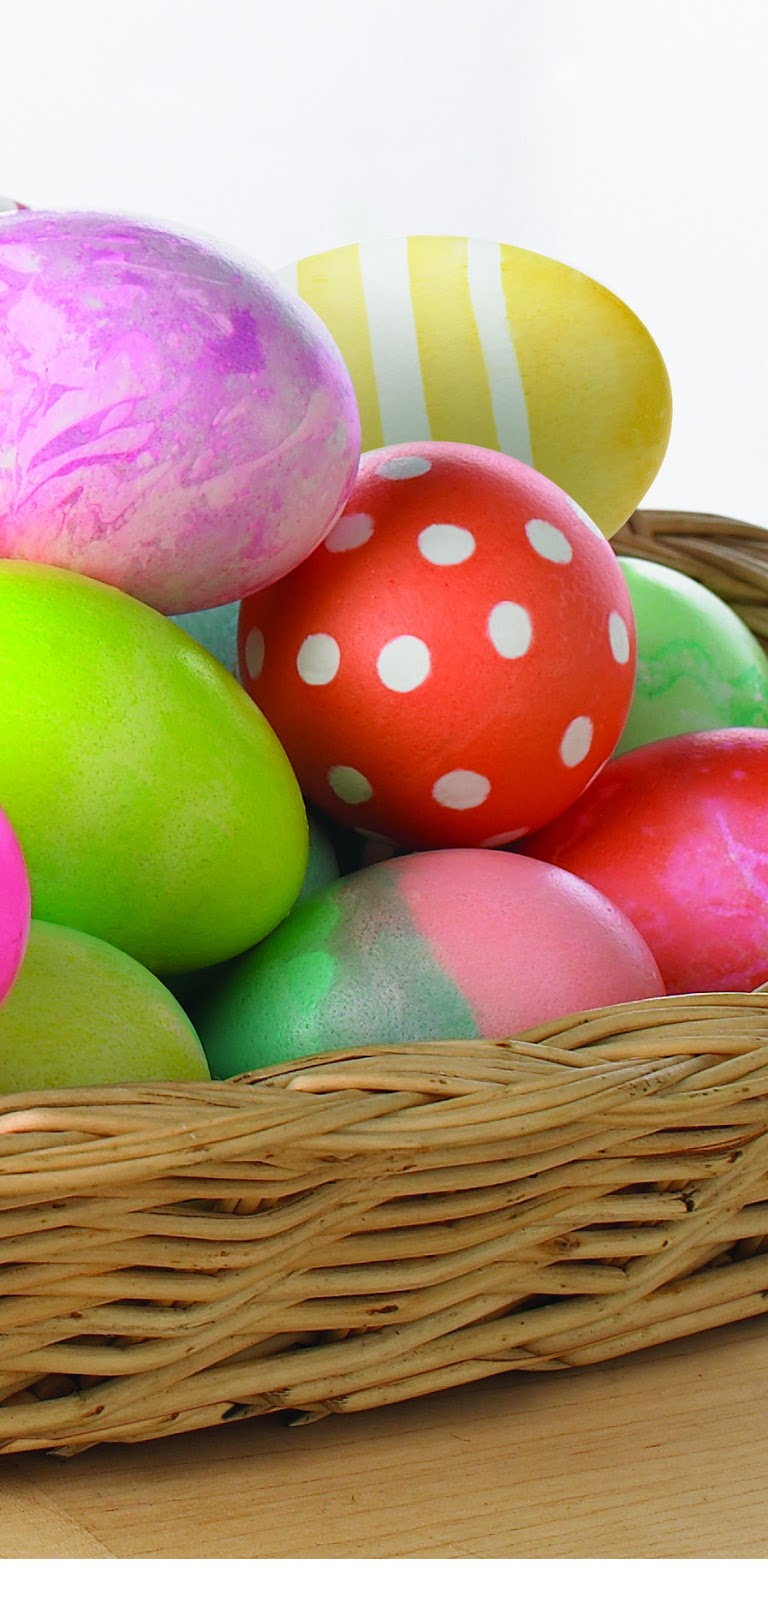 Happy Easter 2013   Download Easter Eggs iPhone 5 HD Wallpapers 768x1600